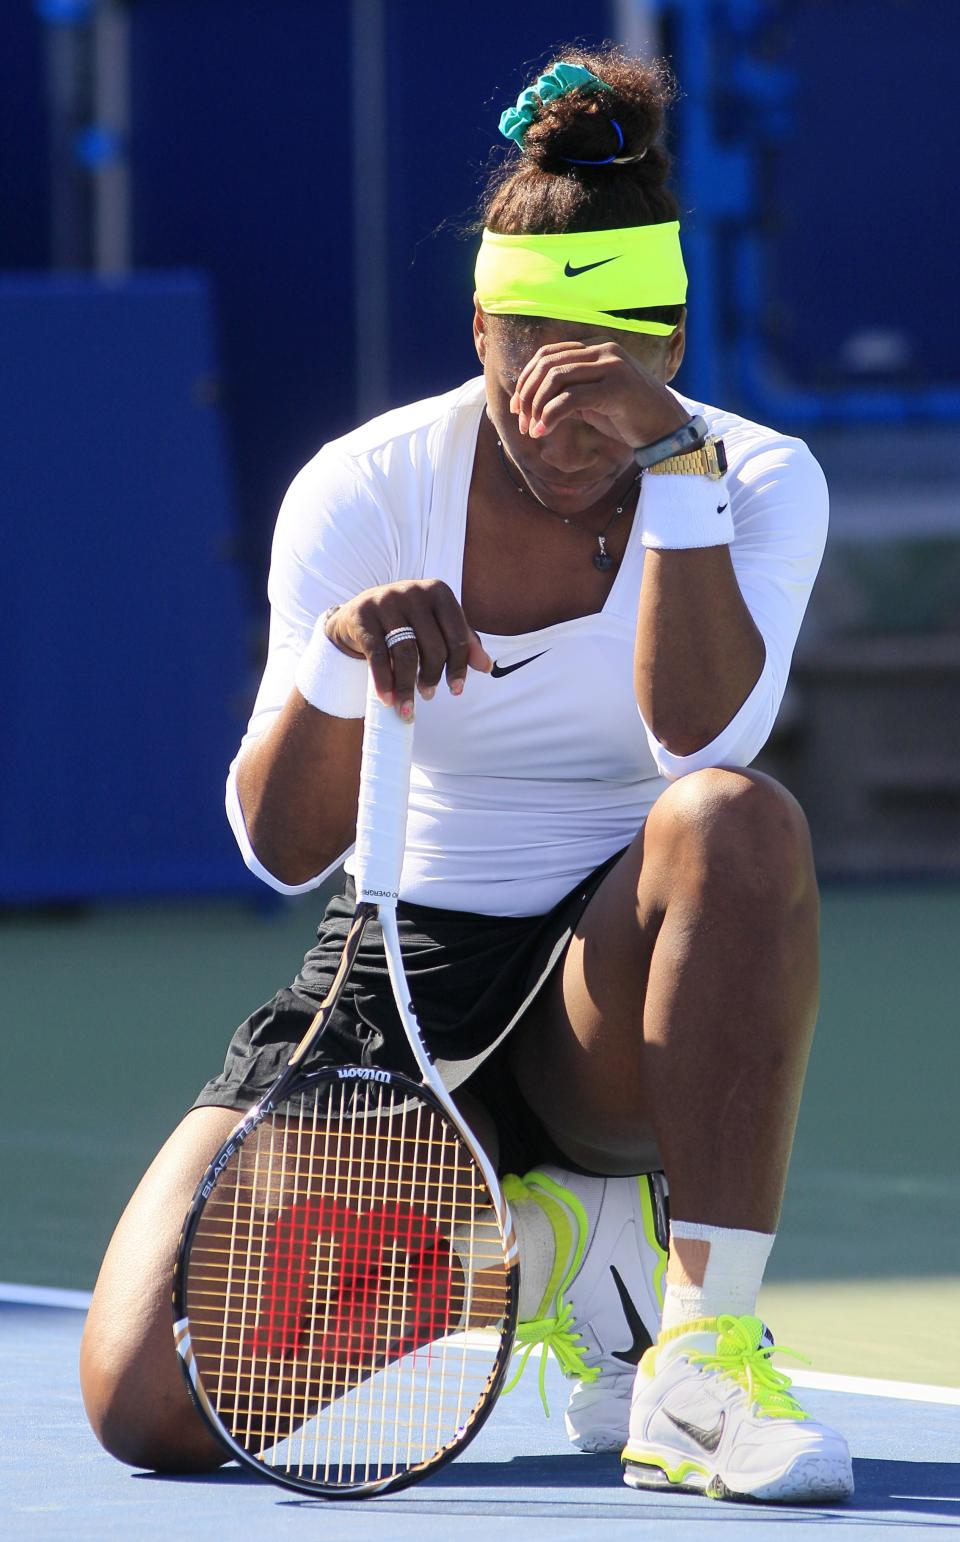 Serena Williams, of the United States, reacts after missing a point against Angelique Kerber, from Germany, during a quarterfinal at the Western & Southern Open tennis tournament, Friday, Aug. 17, 2012, in Mason, Ohio. Kerber won 6-4, 6-4. (AP Photo/Al Behrman)